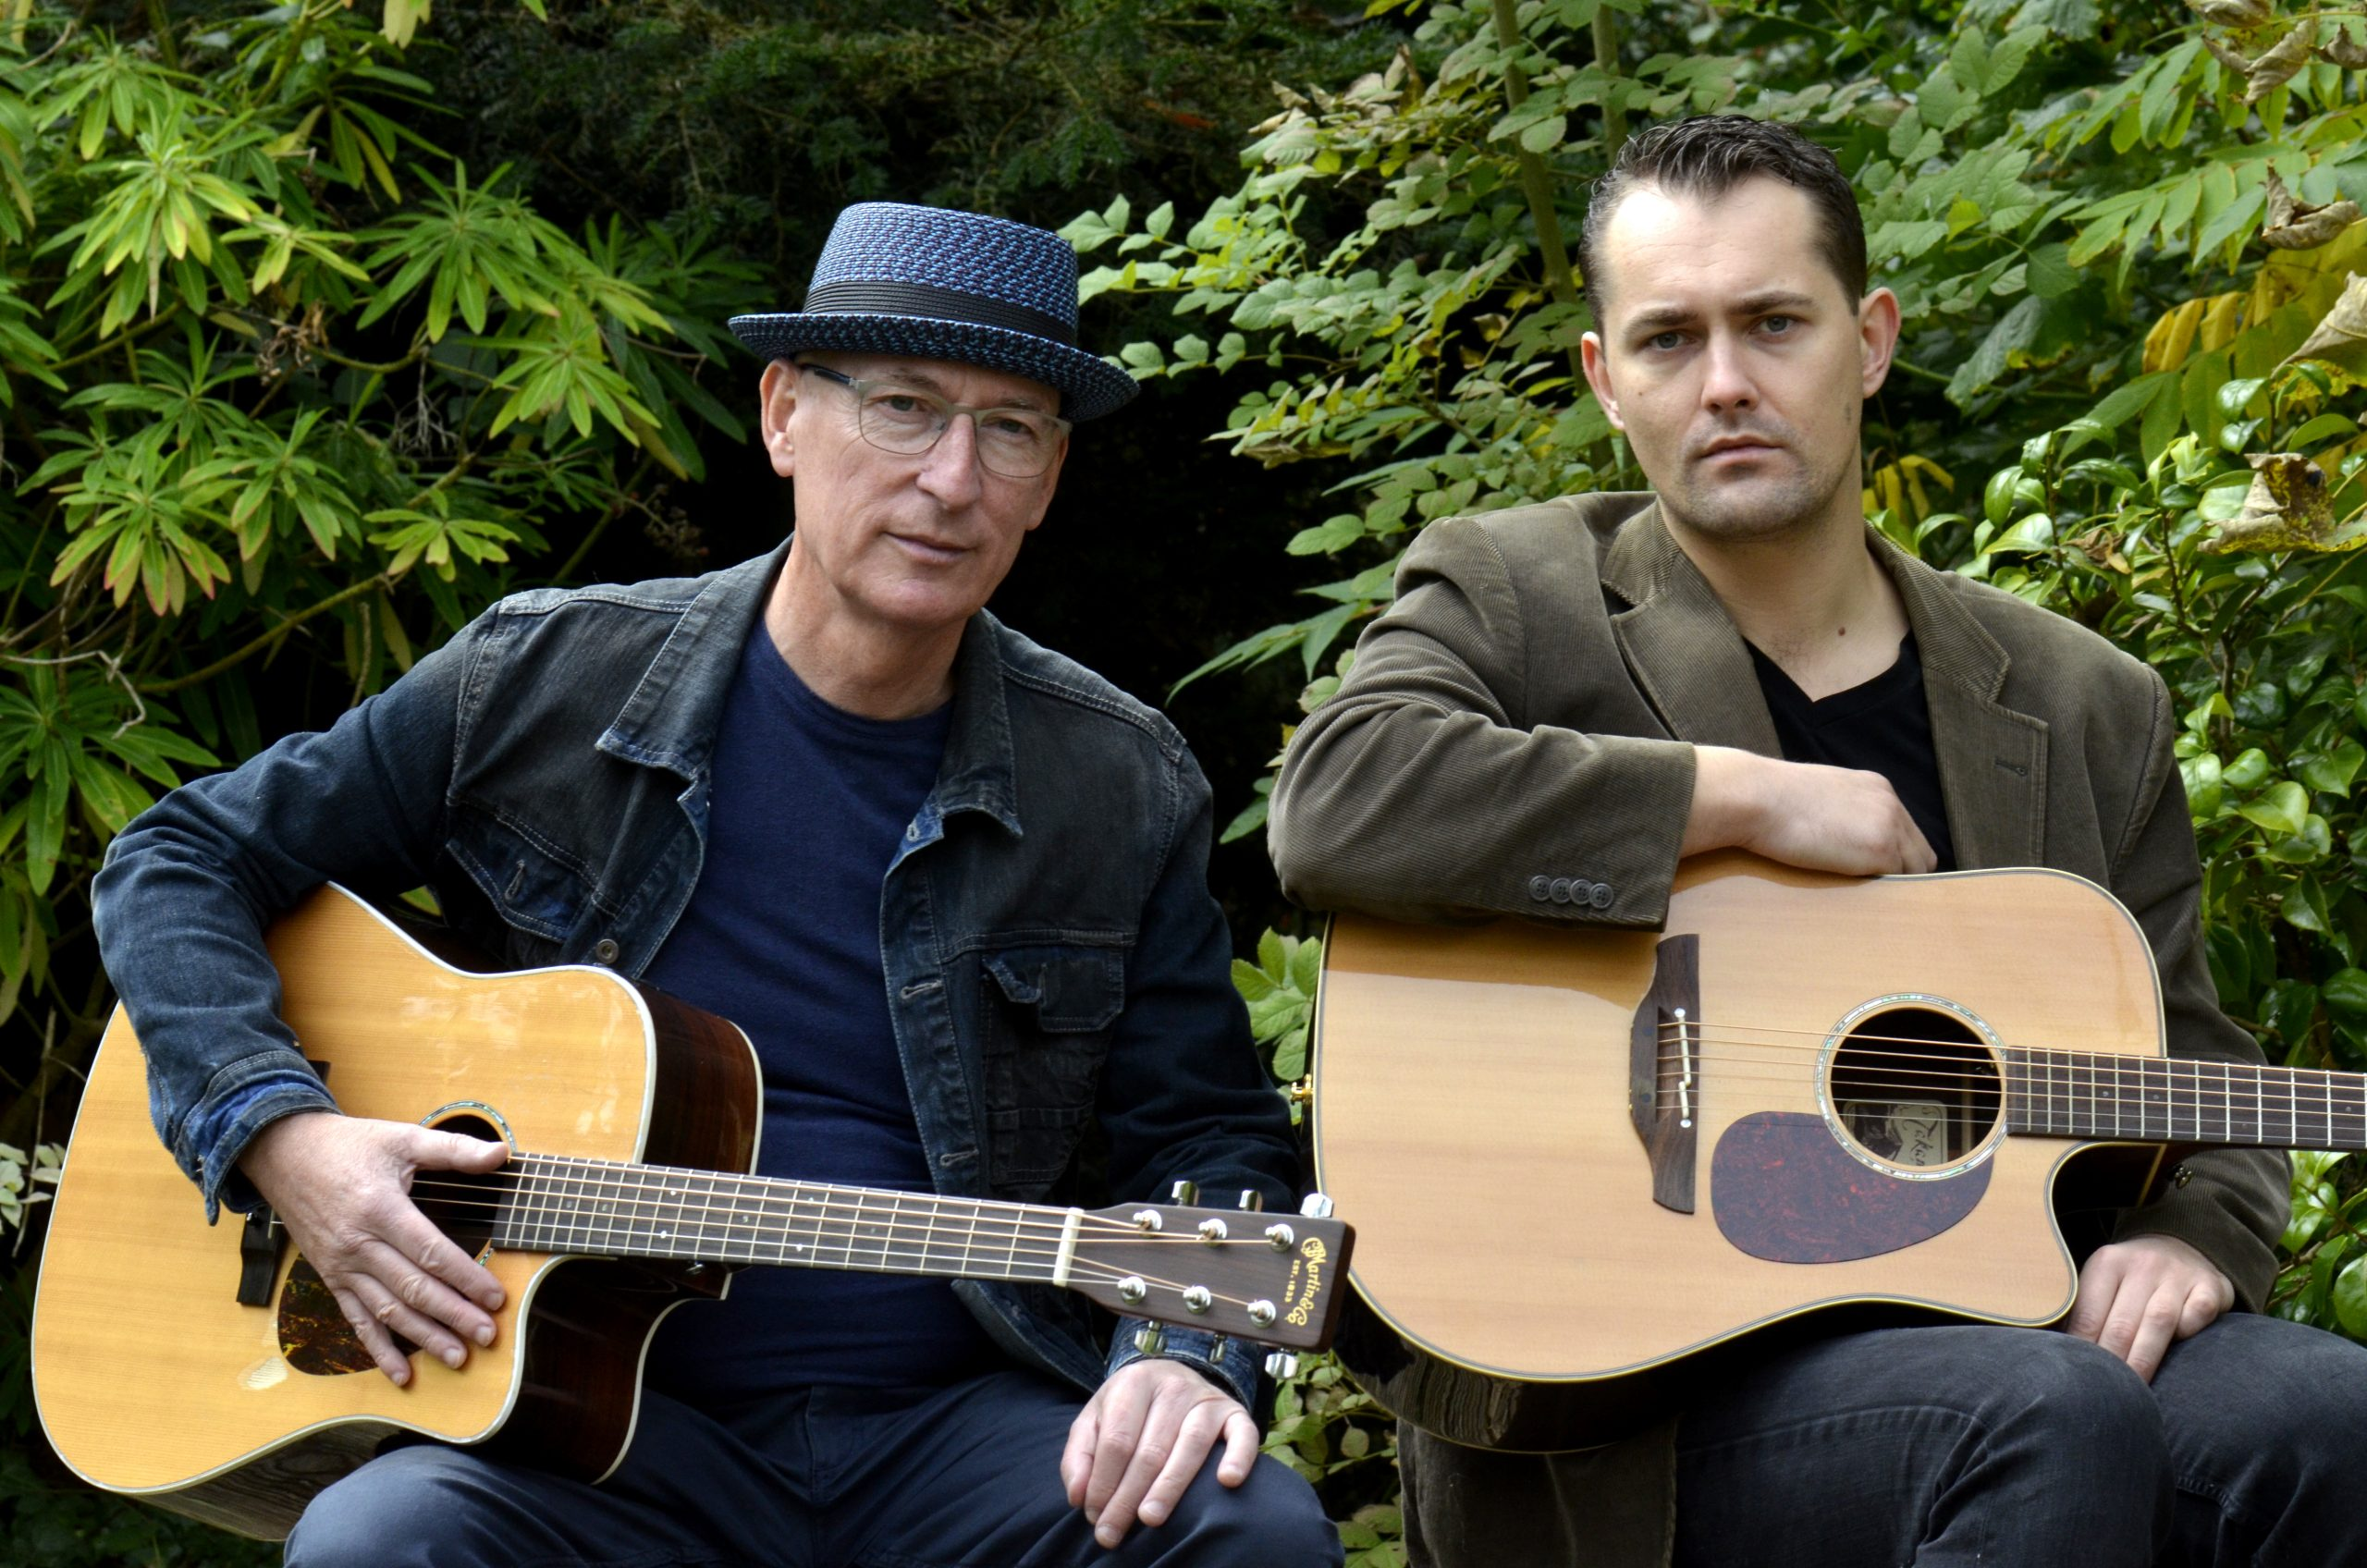 """Liam Merriman & Bill Stuart,  """"A musical match made in heaven"""", play  Central Arts in December"""